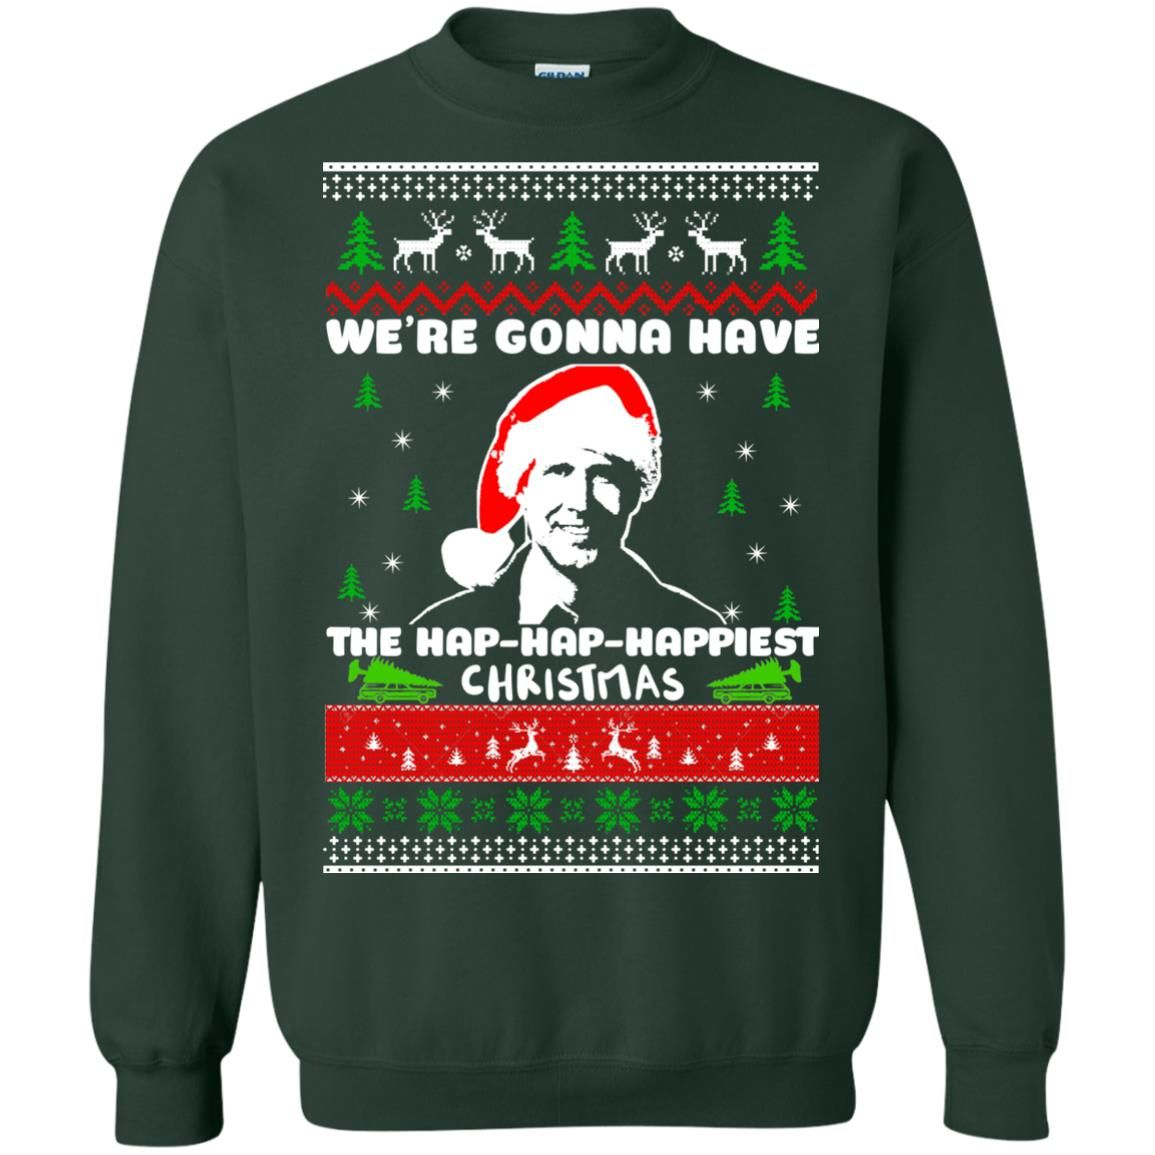 image 1750 - Christmas Vacation: We're gonna have the Hap-Hap-Happiest Christmas sweater, hoodie